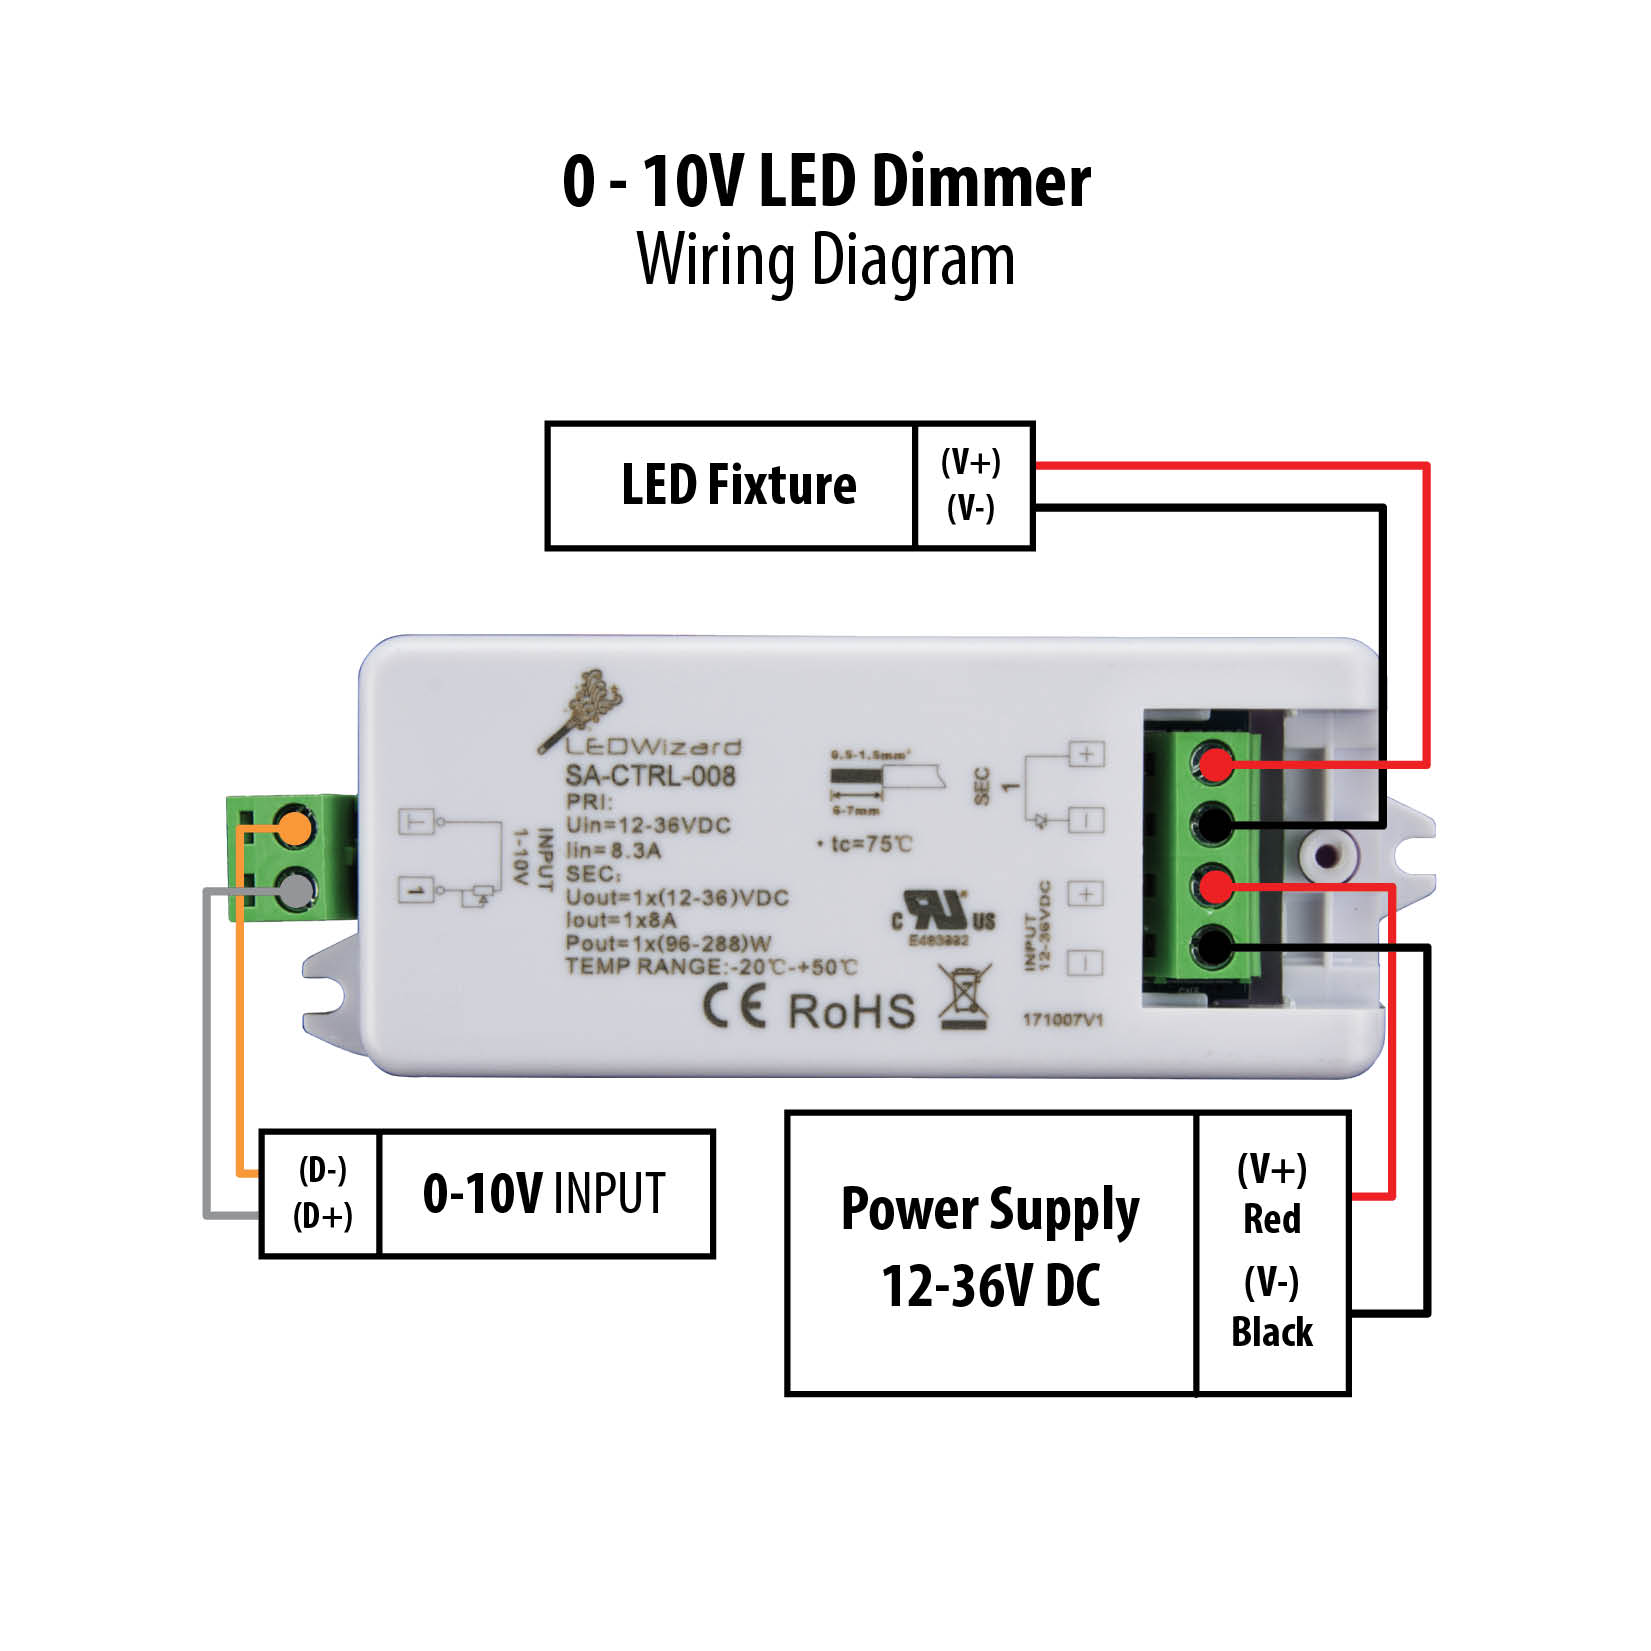 Read Coil Analogic Output M103 Unipitechnology Forum 0 10v Wiring Diagram 1535107086461 10 Led Dimmer